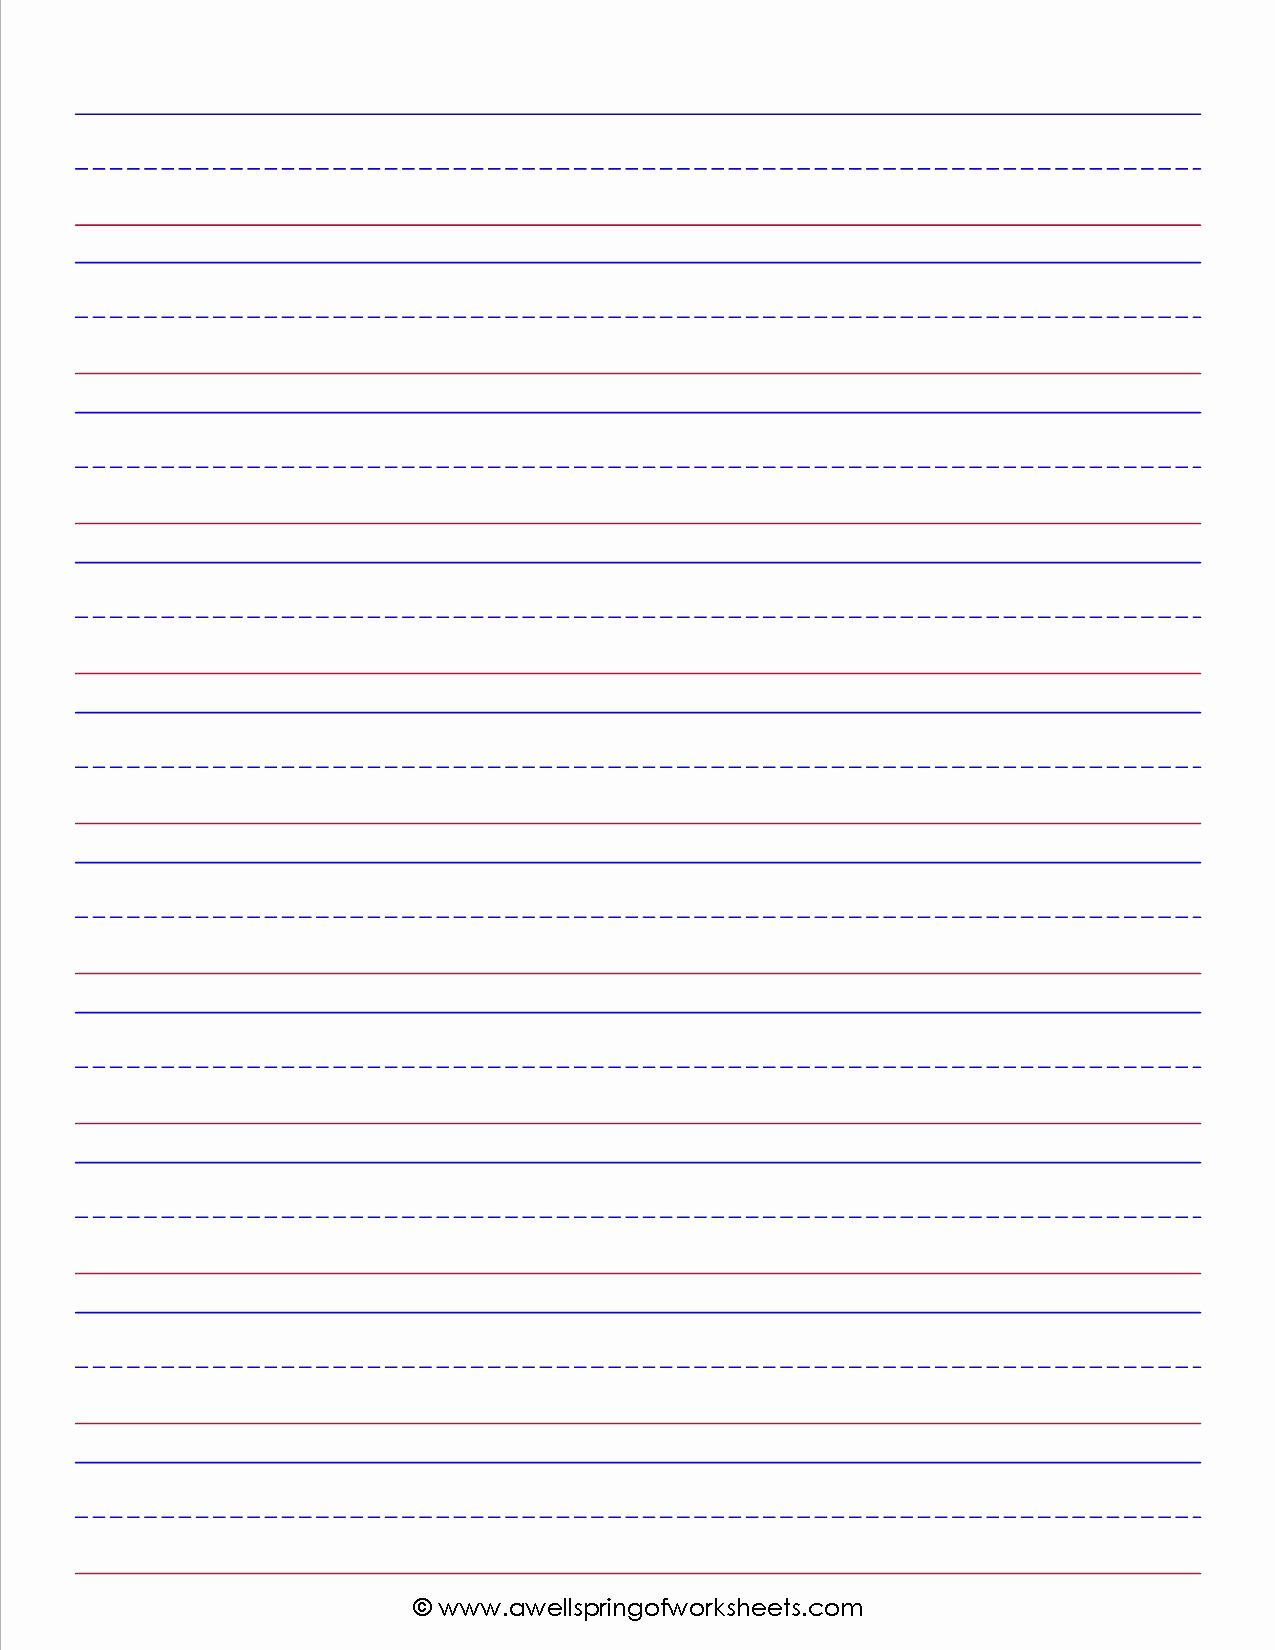 Lined Writing Paper Luxury Best S Of 3 Lined Paper Template Kindergarten Lined